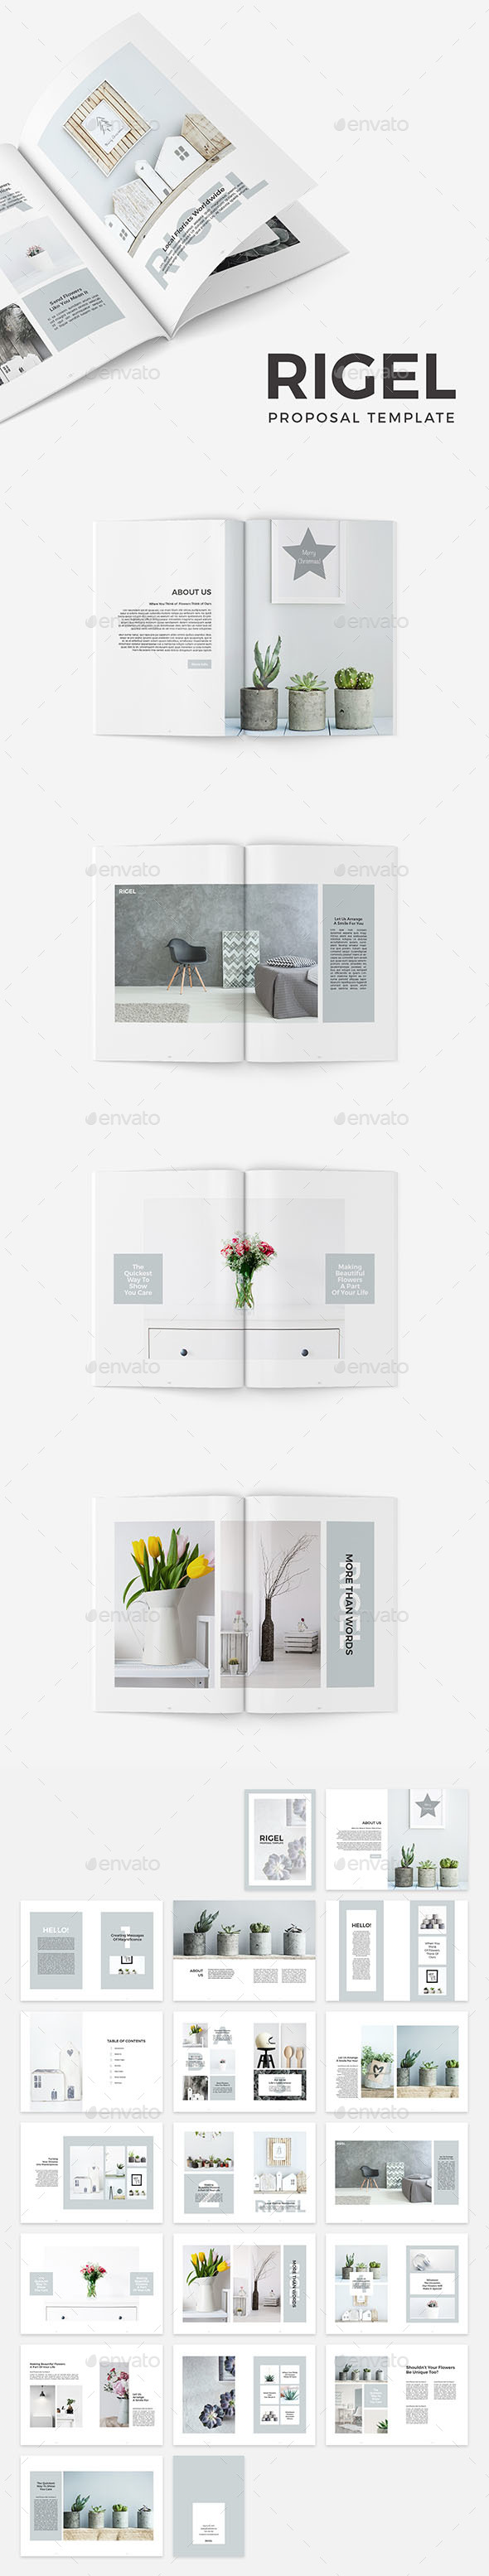 Rigel Proposal Template - Catalogs Brochures